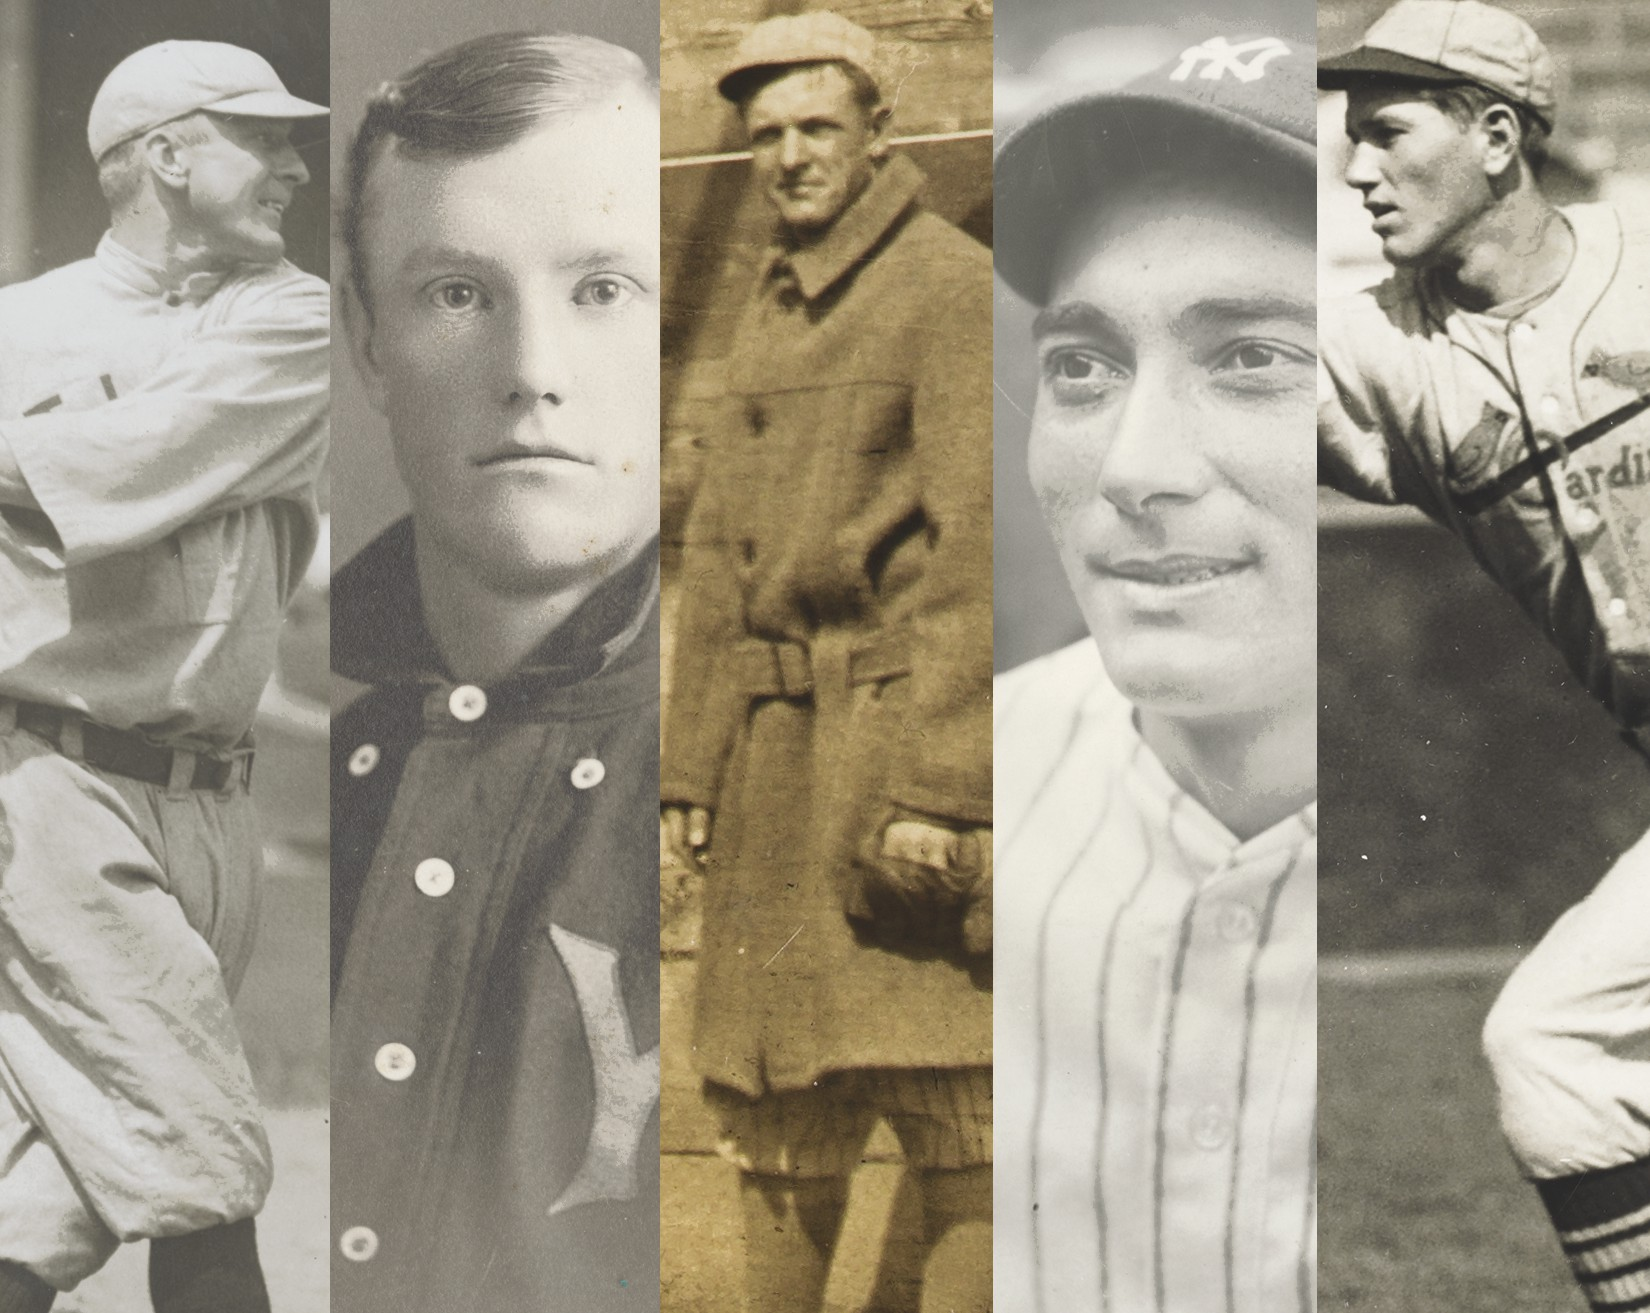 Christie's online auction of The Golden Age of Baseball provides a keyhole look into the various categories of baseball memorabilia and photographs.